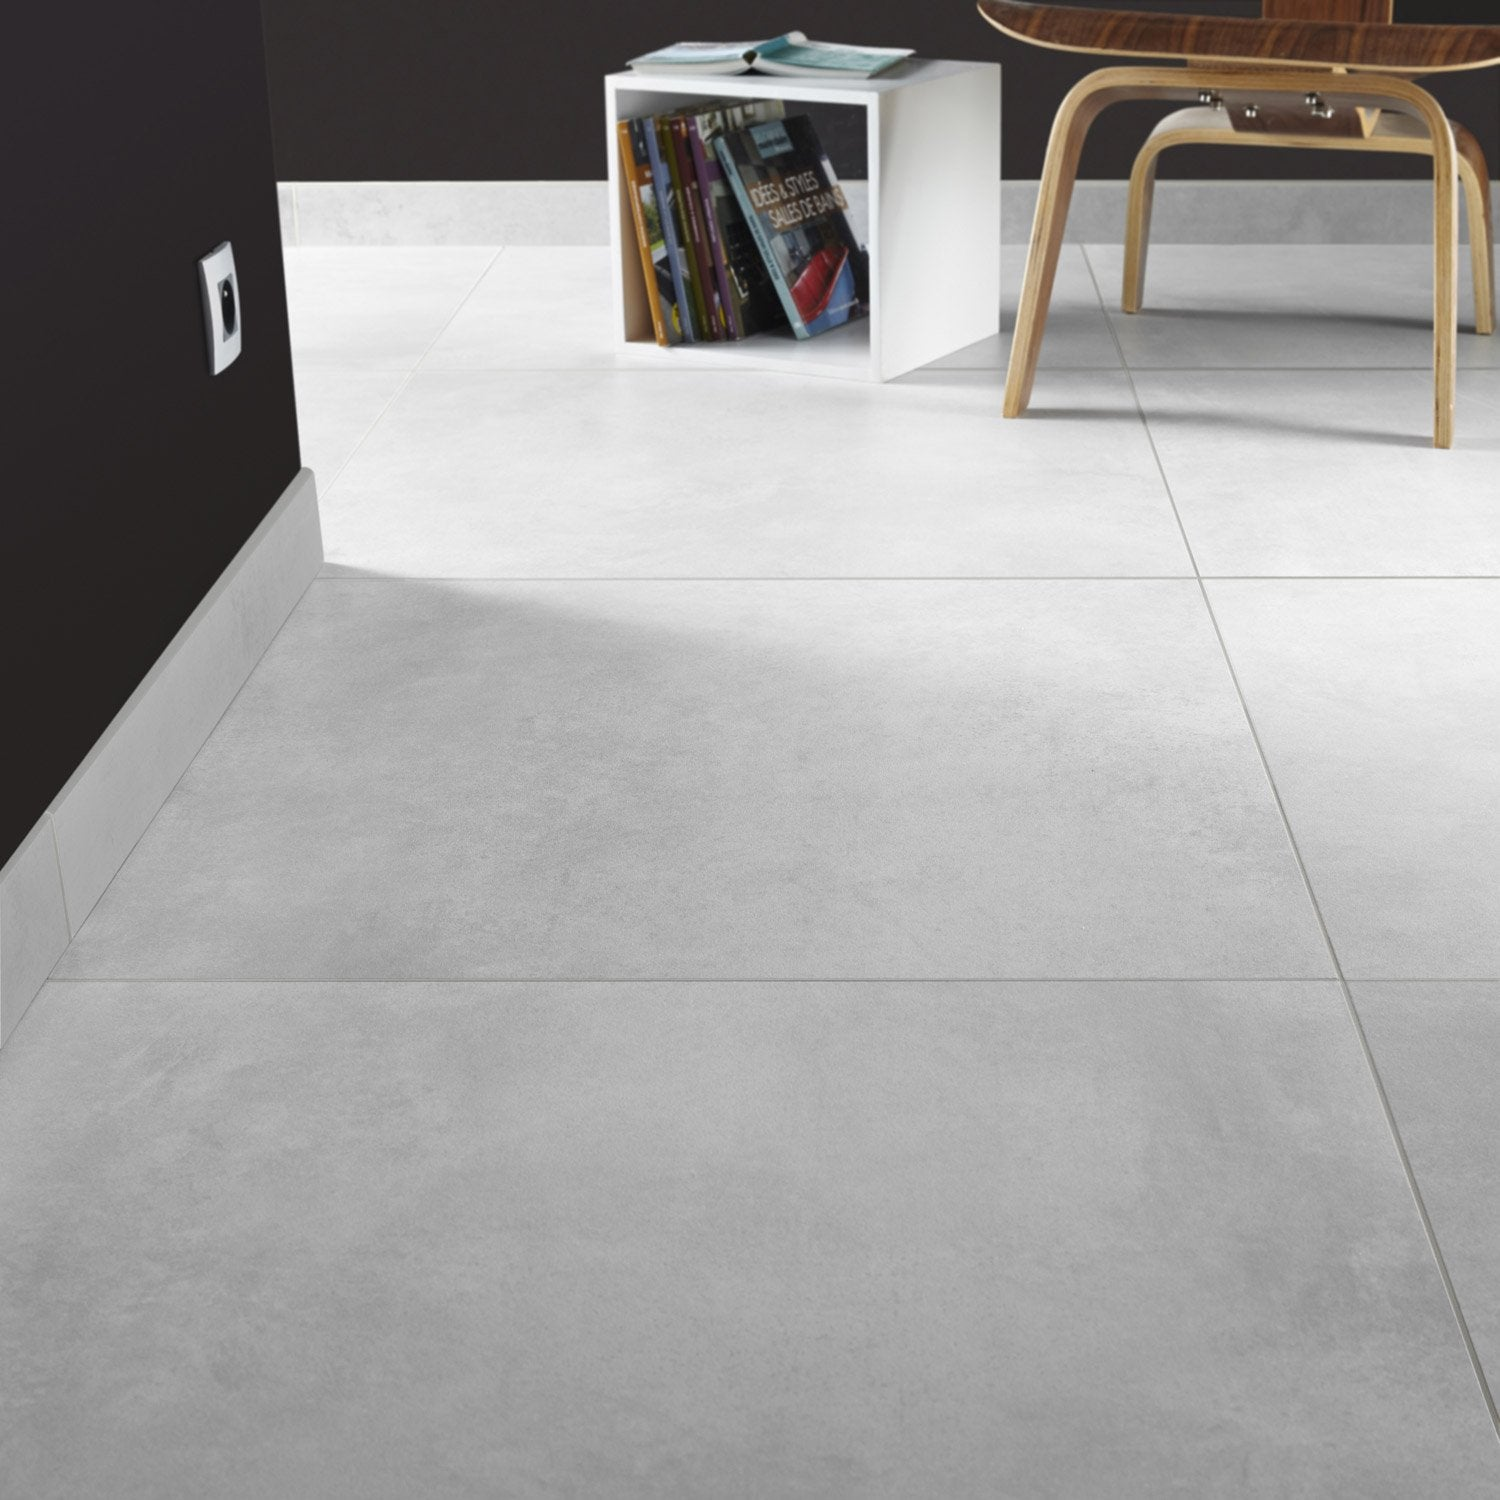 Carrelage sol blanc brillant with carrelage sol blanc for Carrelage noir brillant